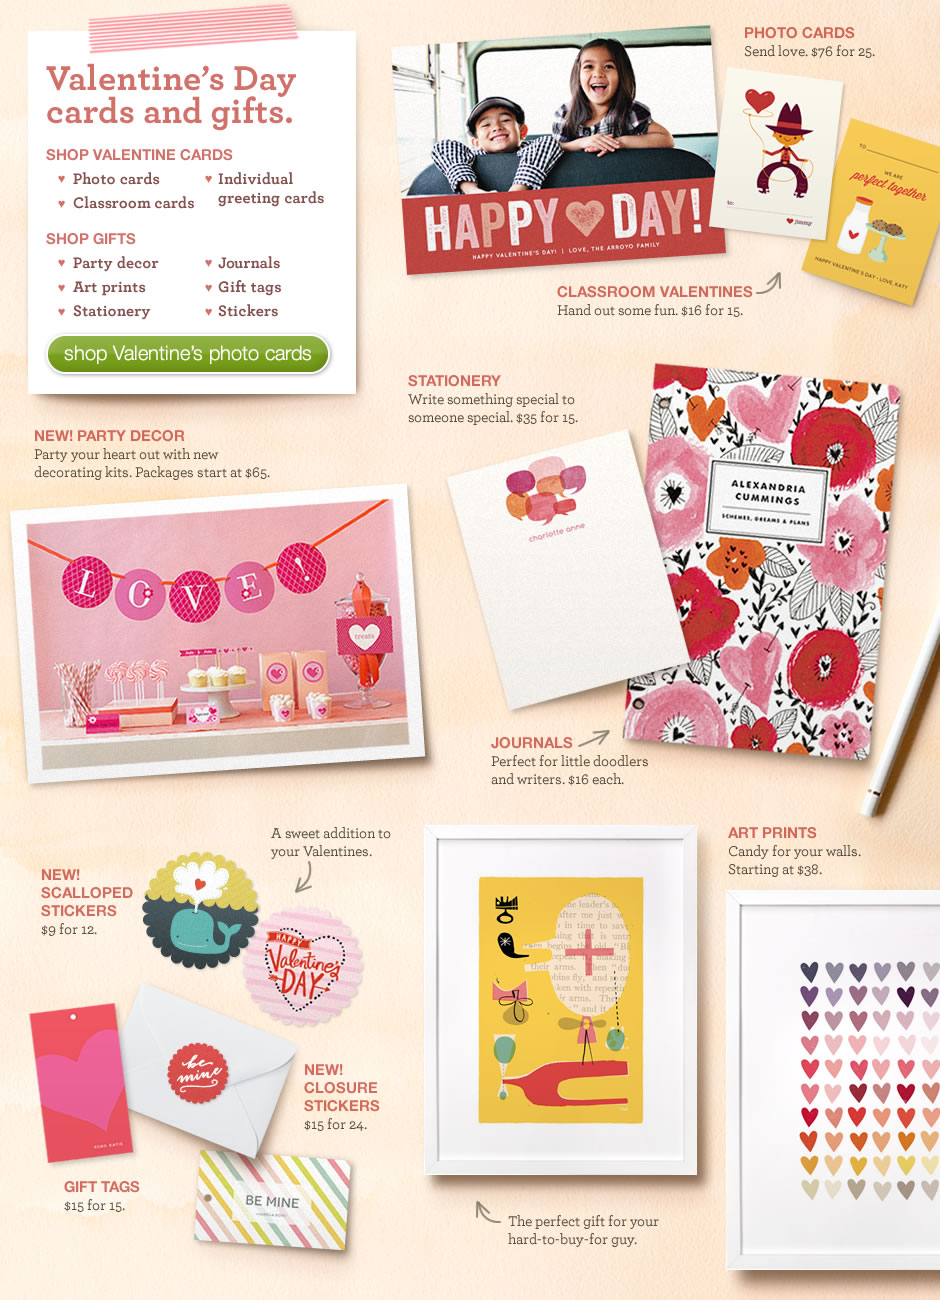 Valentine's Day cards and gifts.